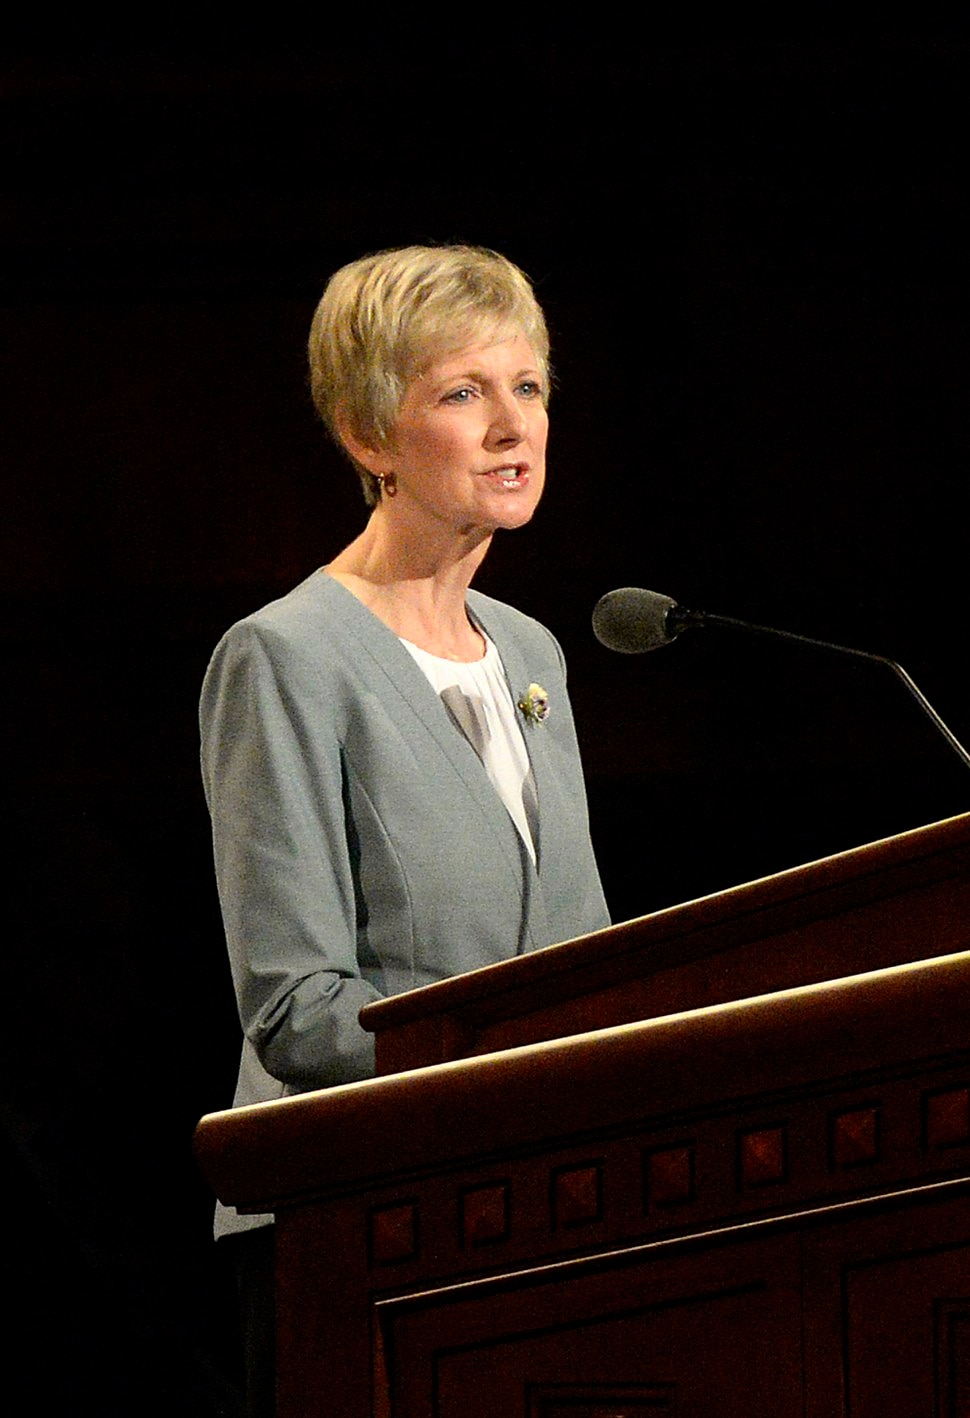 (Al Hartmann | The Salt Lake Tribune) Jean B. Bingham, Relief Society general president, speaks at General Conference on Sunday, Oct. 1 2017.